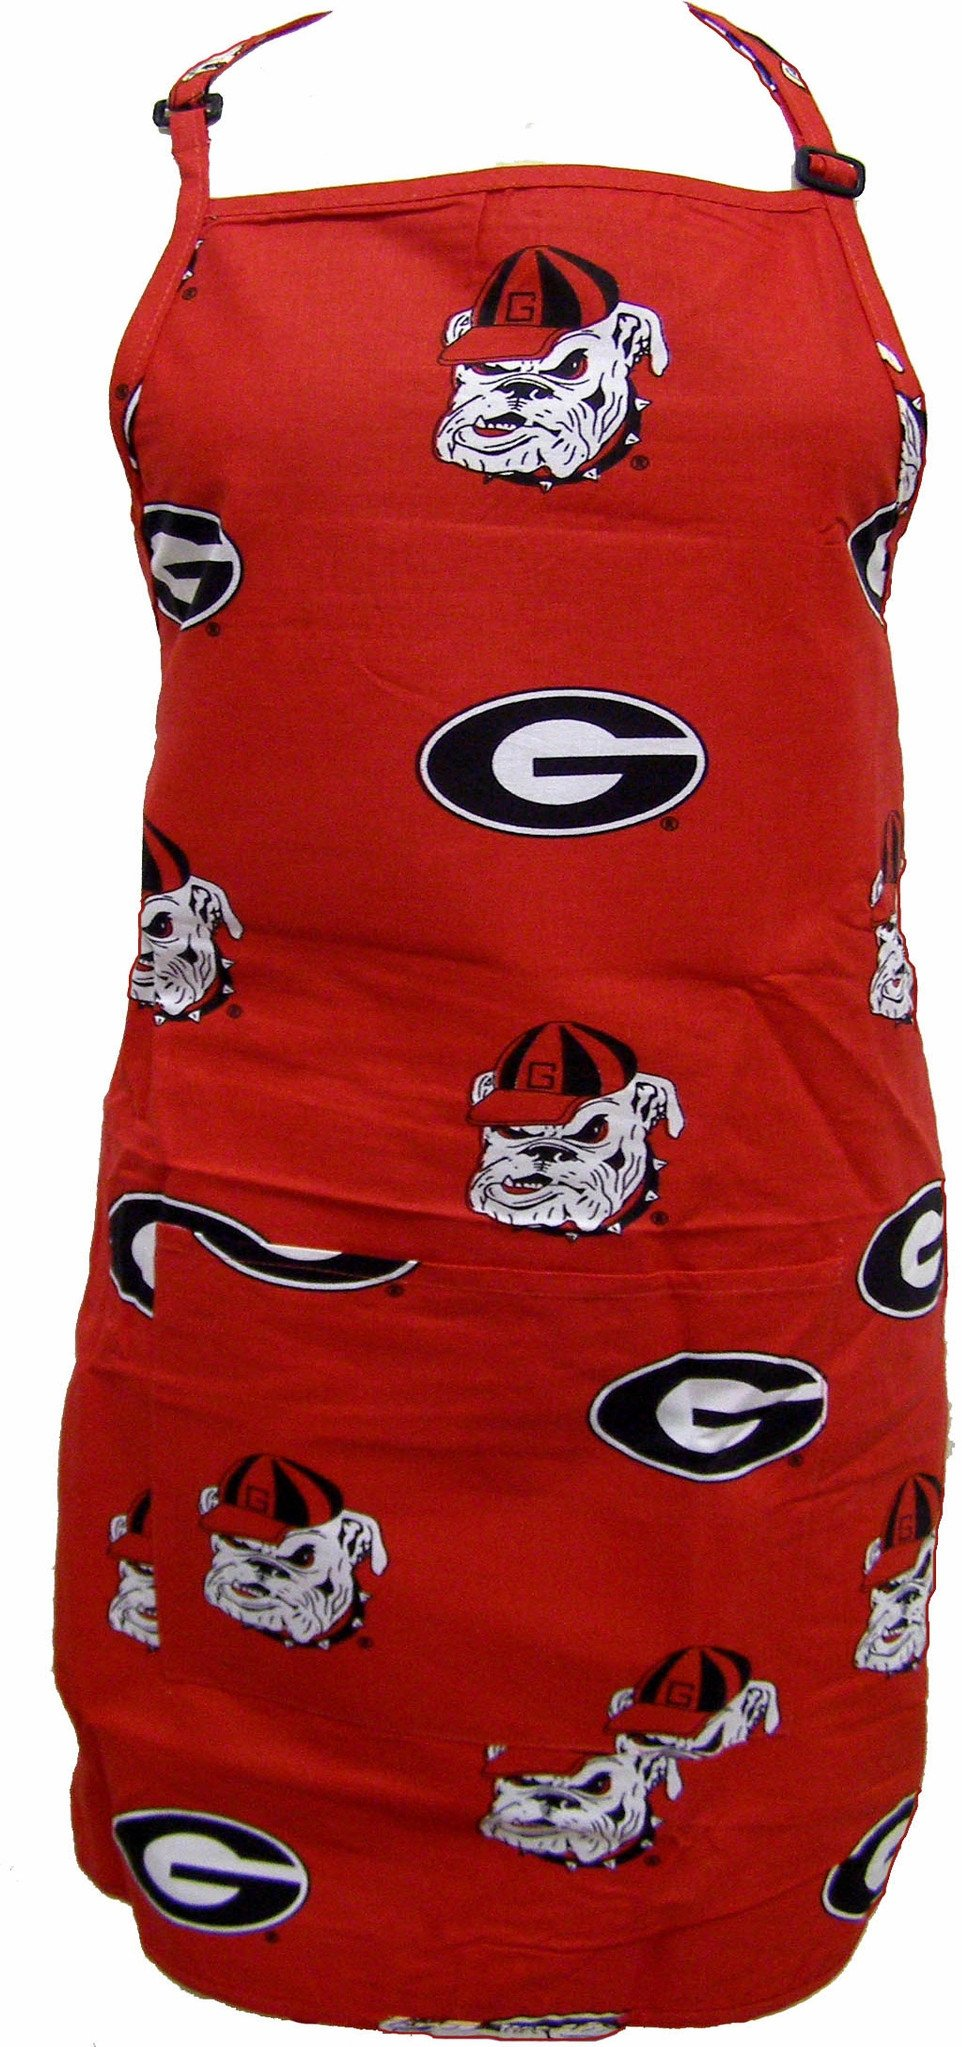 "Georgia Apron 26""X35"" with 9"" pocket - GEOAPR by College Covers from College Covers"